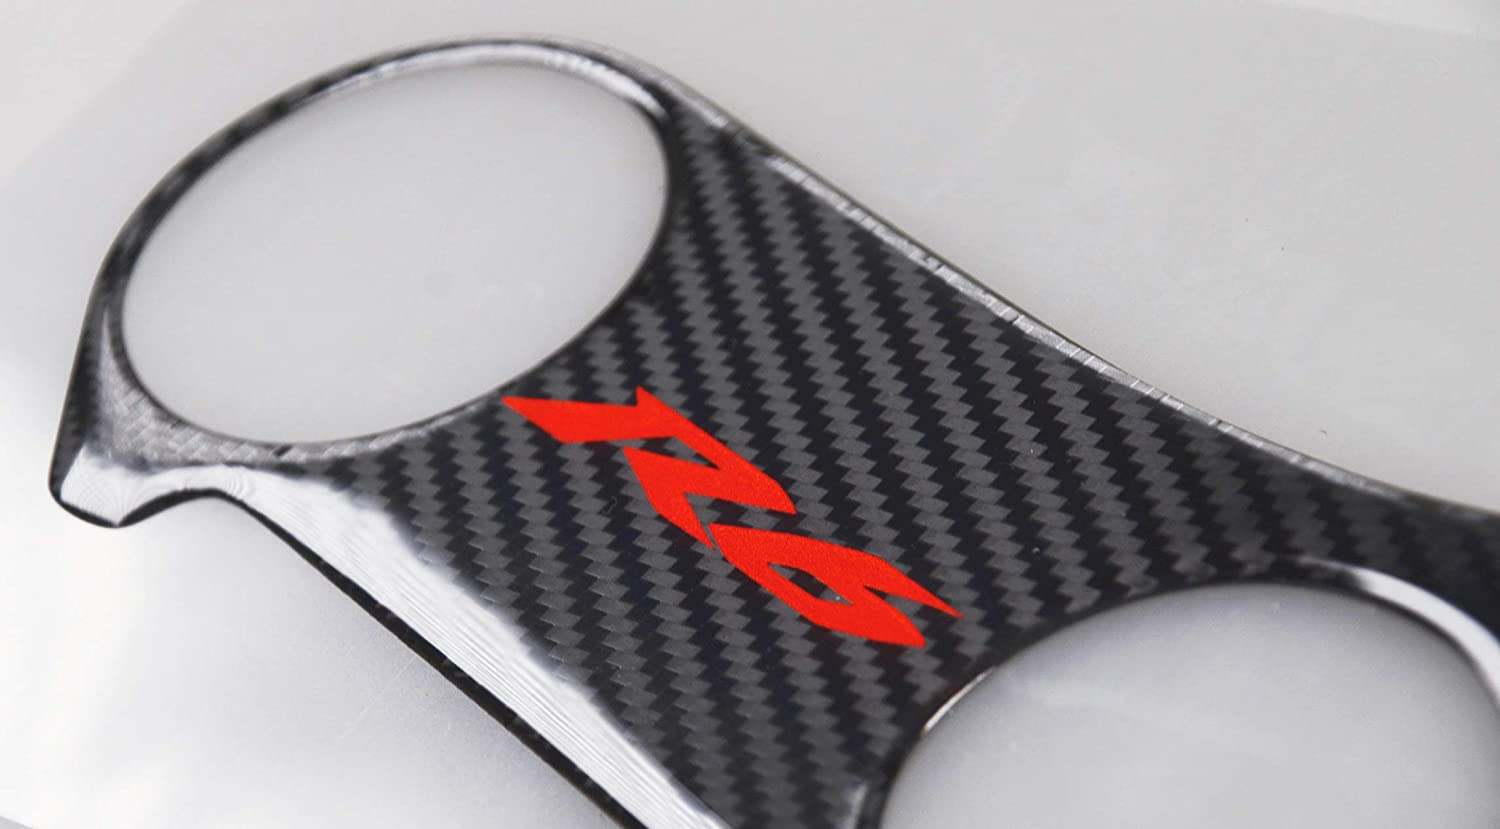 Triple Tree Front End Upper REVSOSTAR Real Carbon Fibre Gas Cap Tank Pad 4 Pcs Per Set Top Clamp Decal Stickers Tank Protector for Yzf R6 Anti Slip sticker